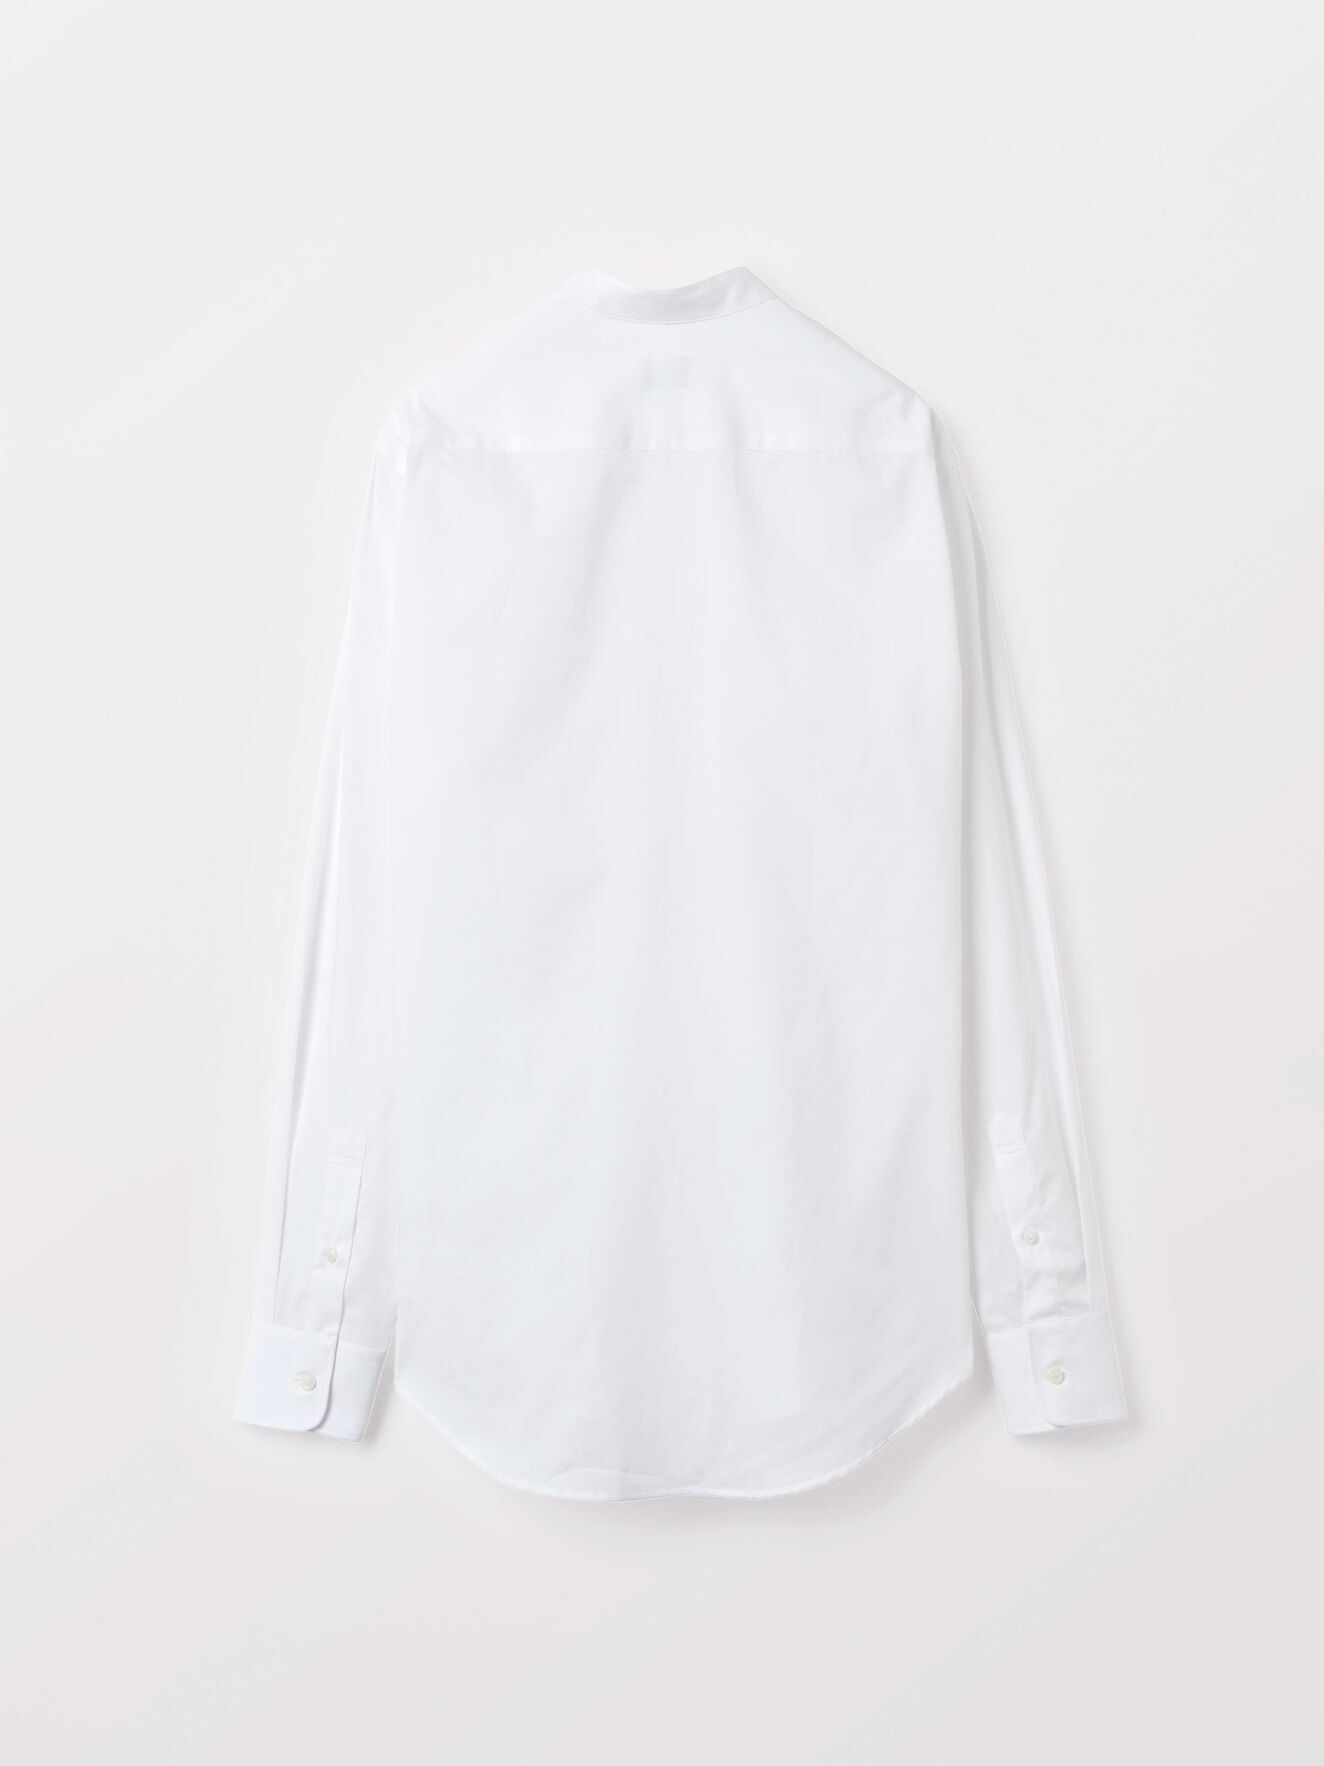 Forward Shirt in Pure white from Tiger of Sweden